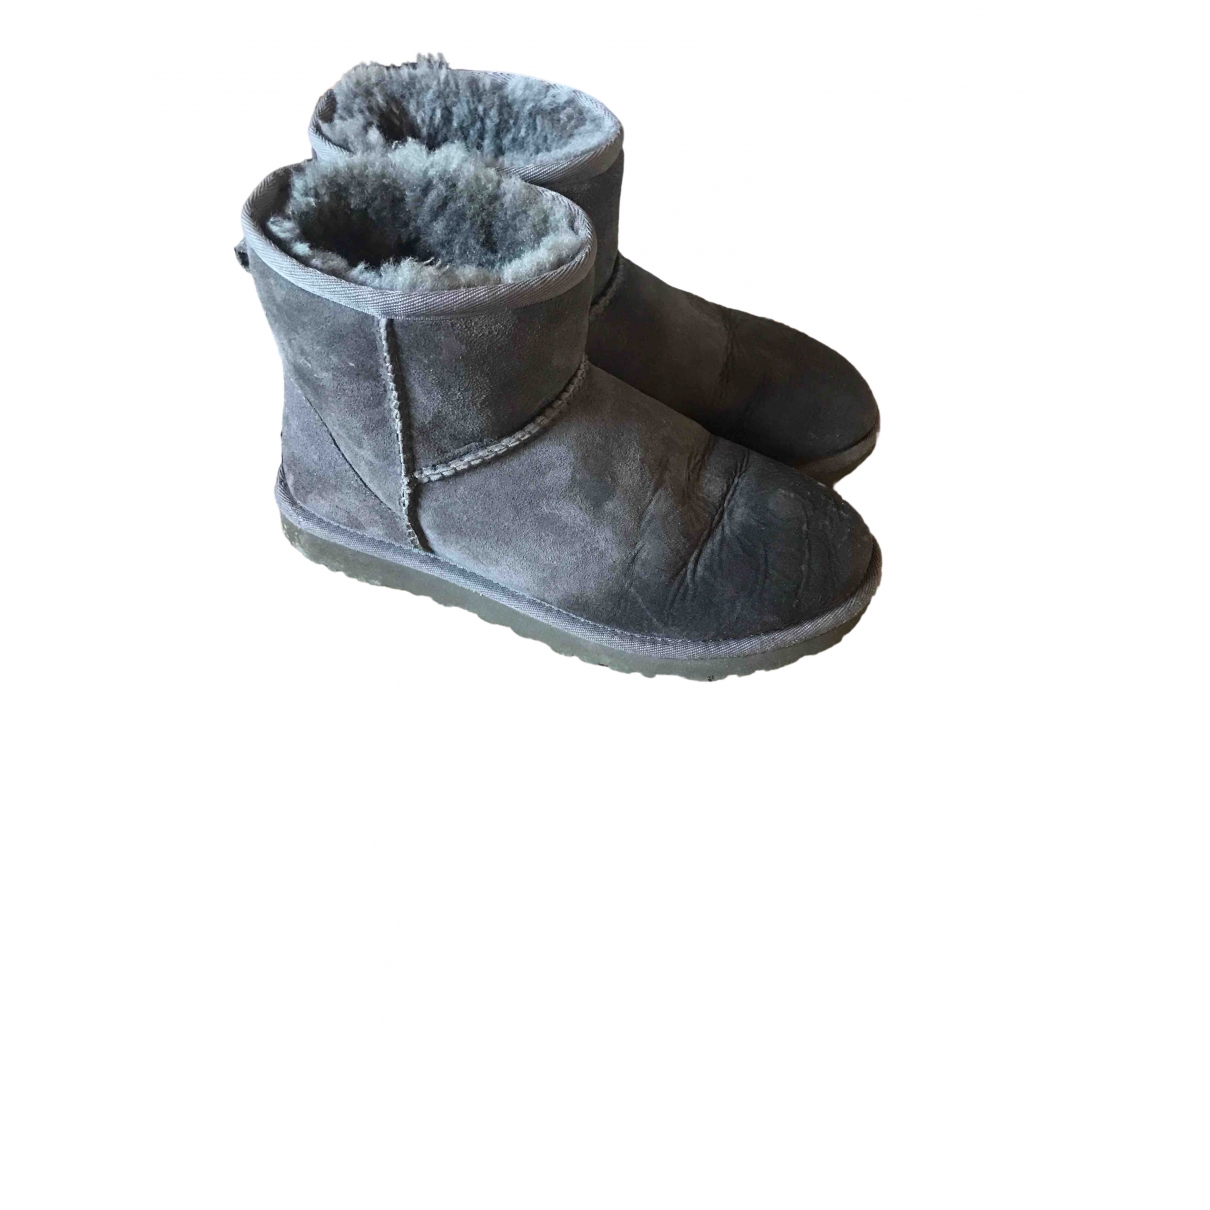 Ugg \N Anthracite Suede Boots for Women 37 EU